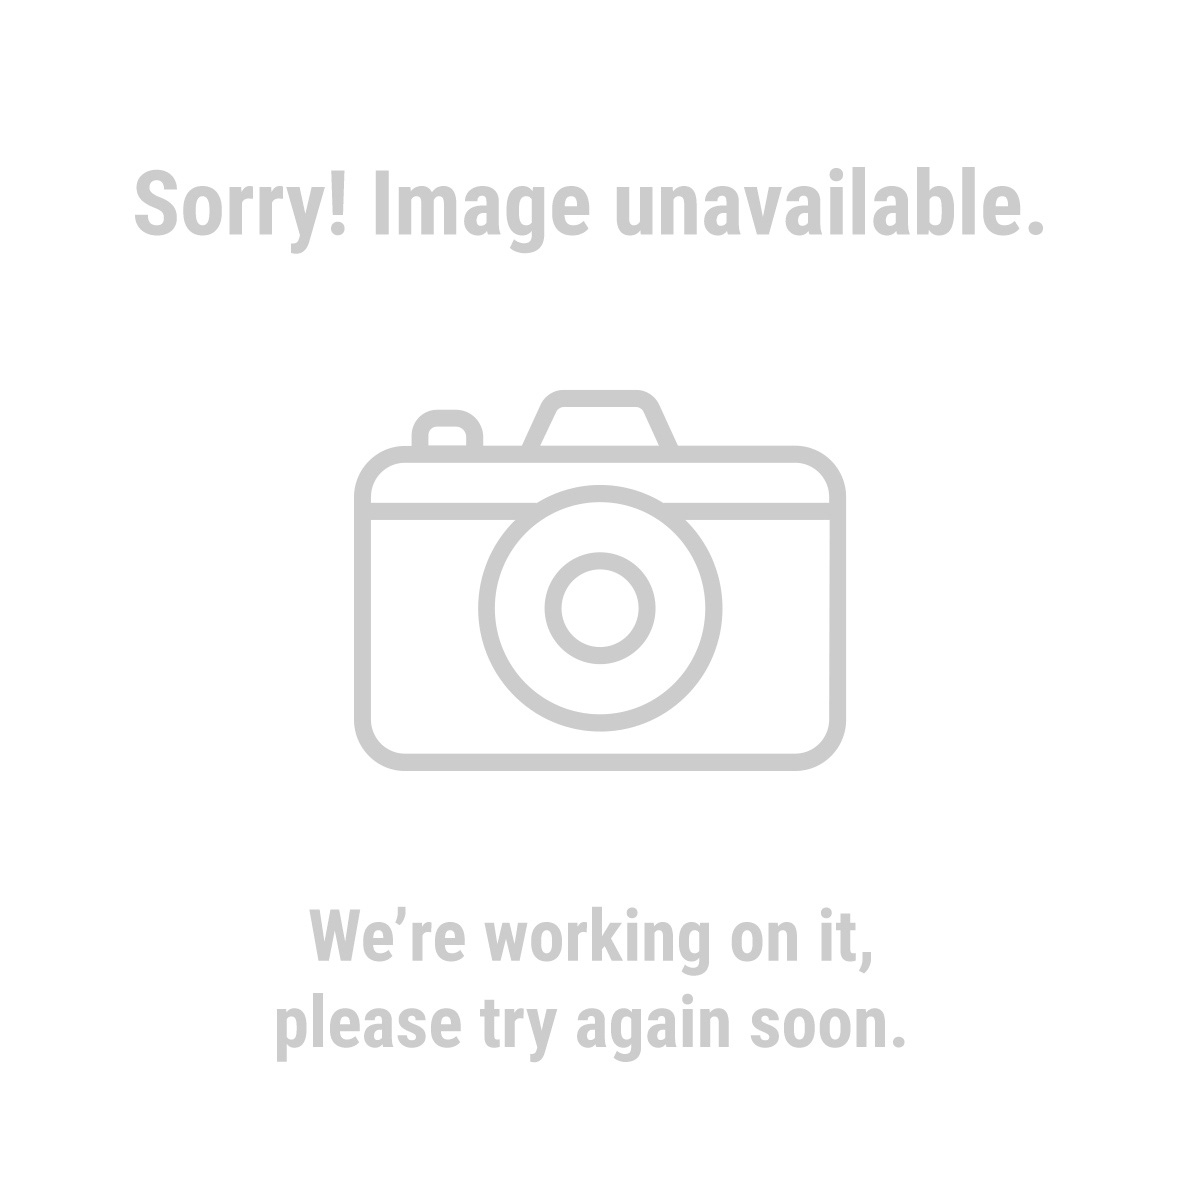 Vanguard 62918 100 Ft. x 10 Gauge Triple Tap Extension Cord